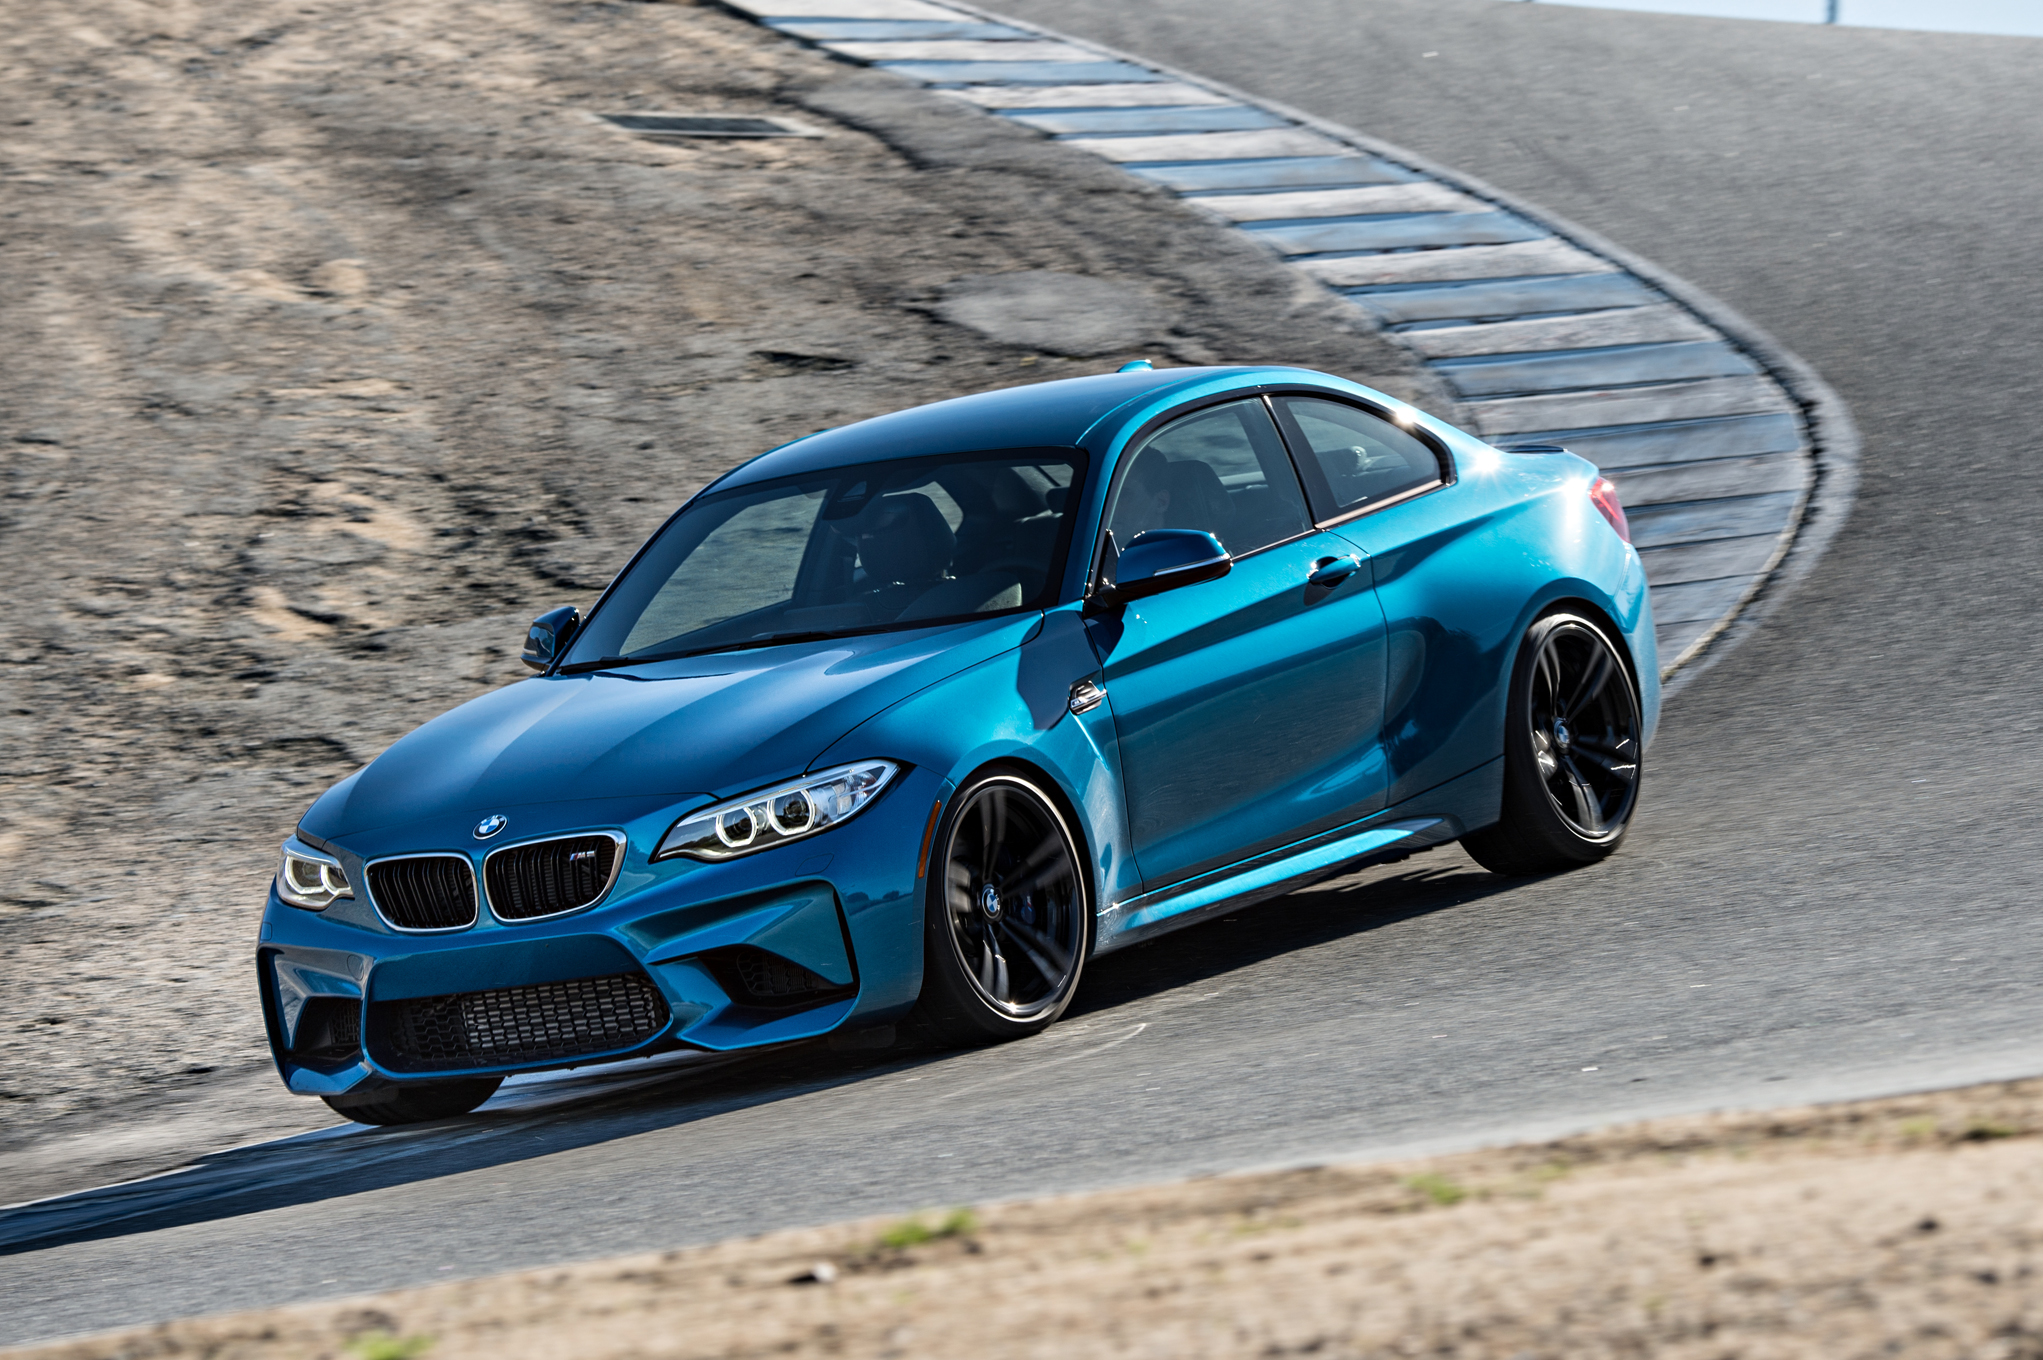 2016 BMW M2 Coupe Blue Metallic Test Drive (Photo 52 of 61)